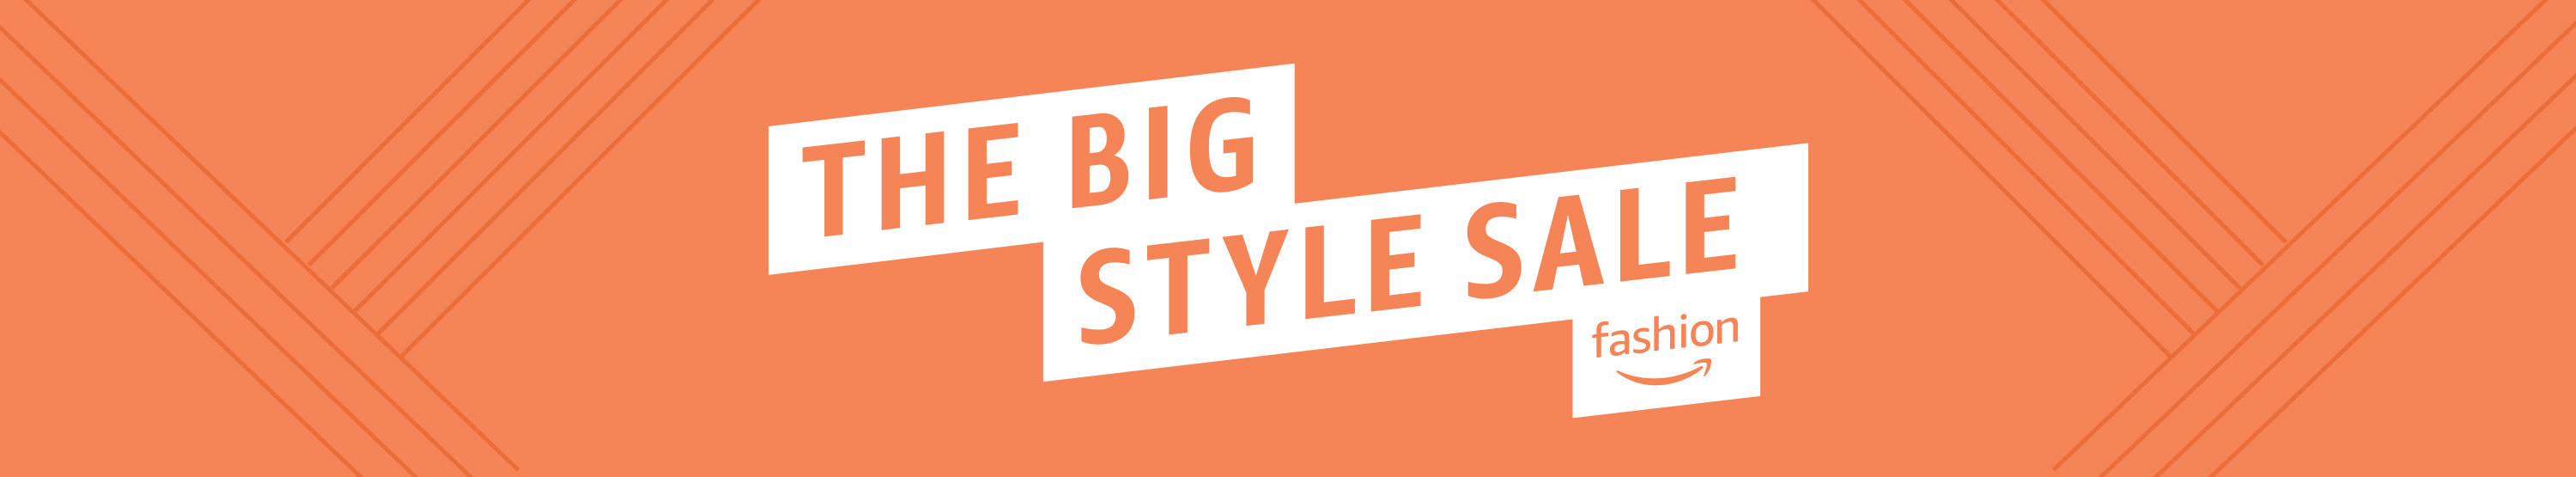 The Big Style Sale banner